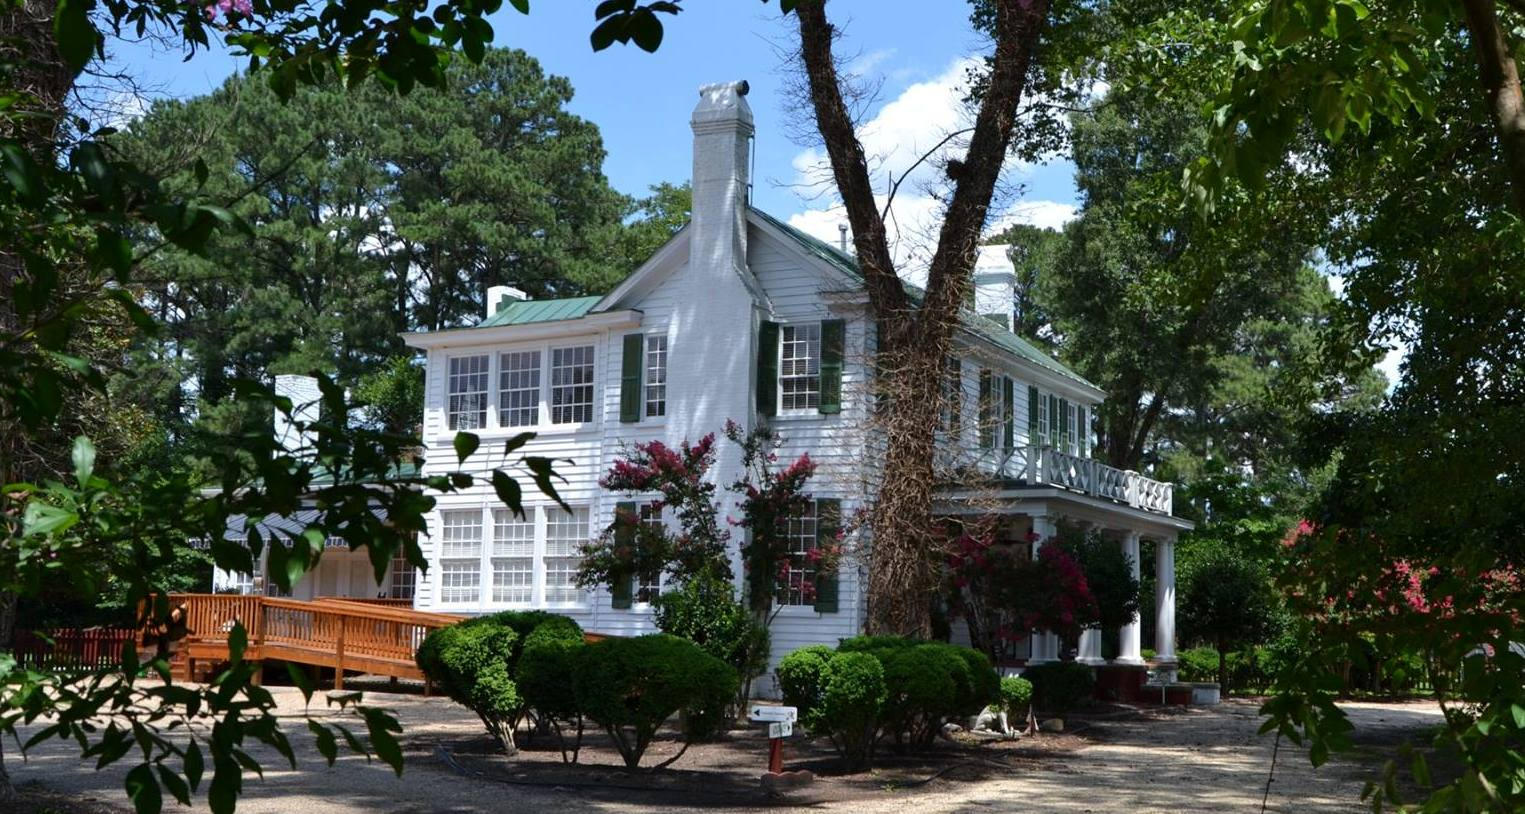 The Flanagan House Bed & Breakfast